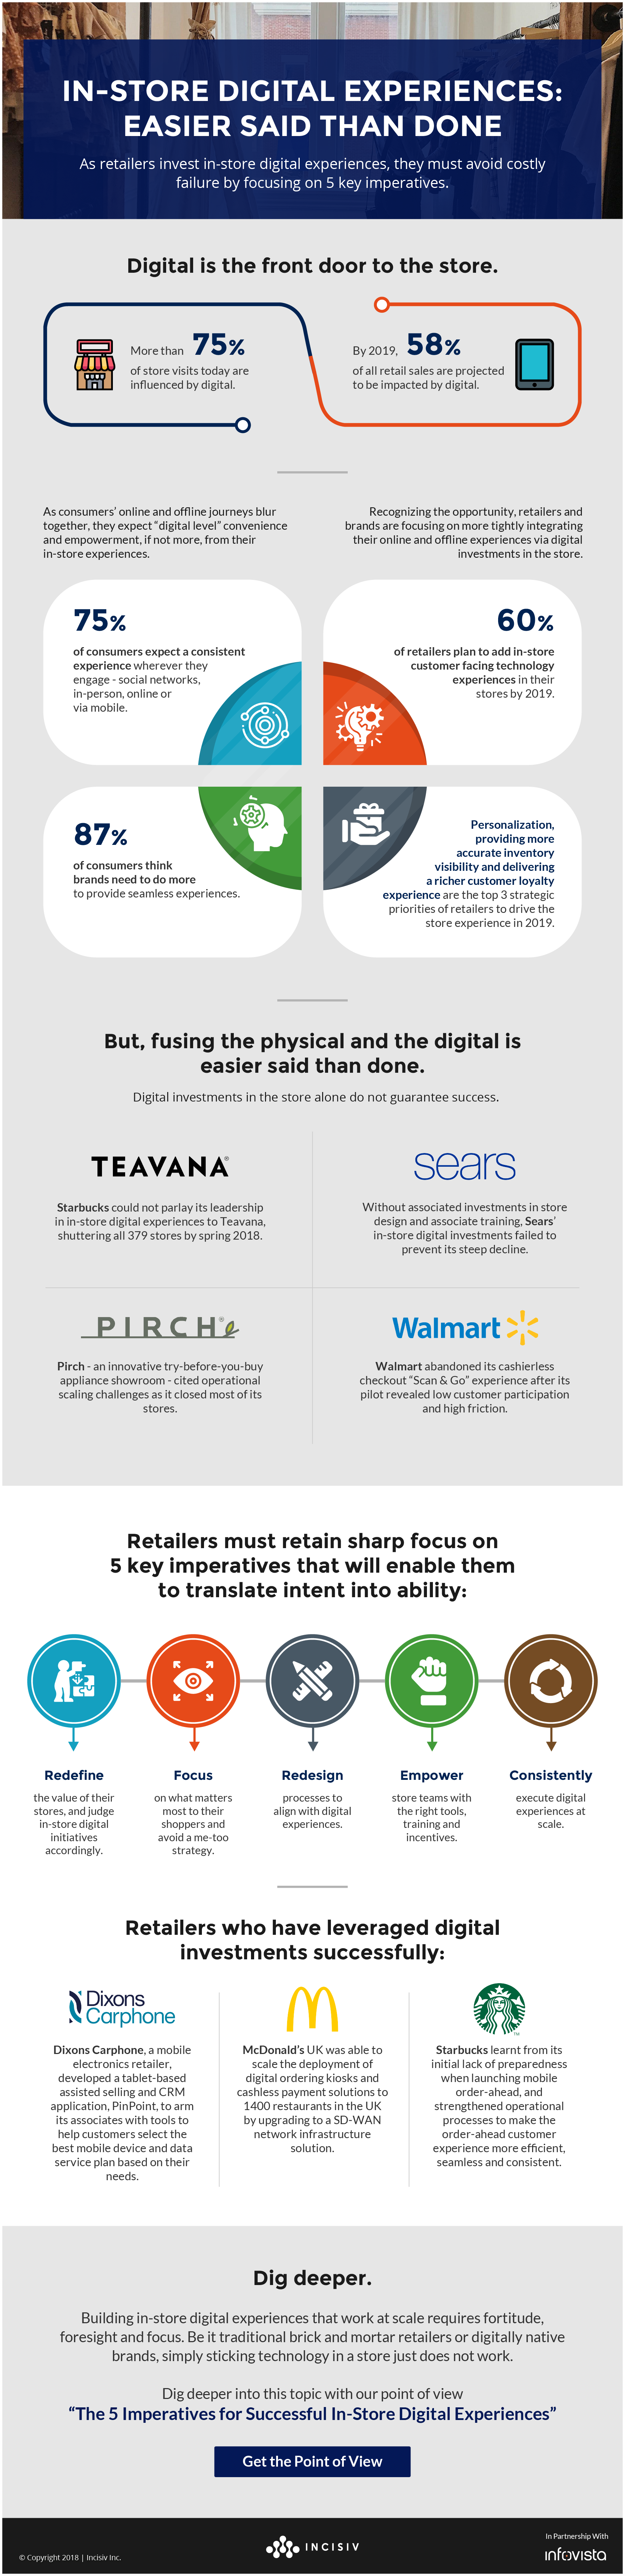 In-Store Digital Experiences - Easier Said Than Done, Infographic